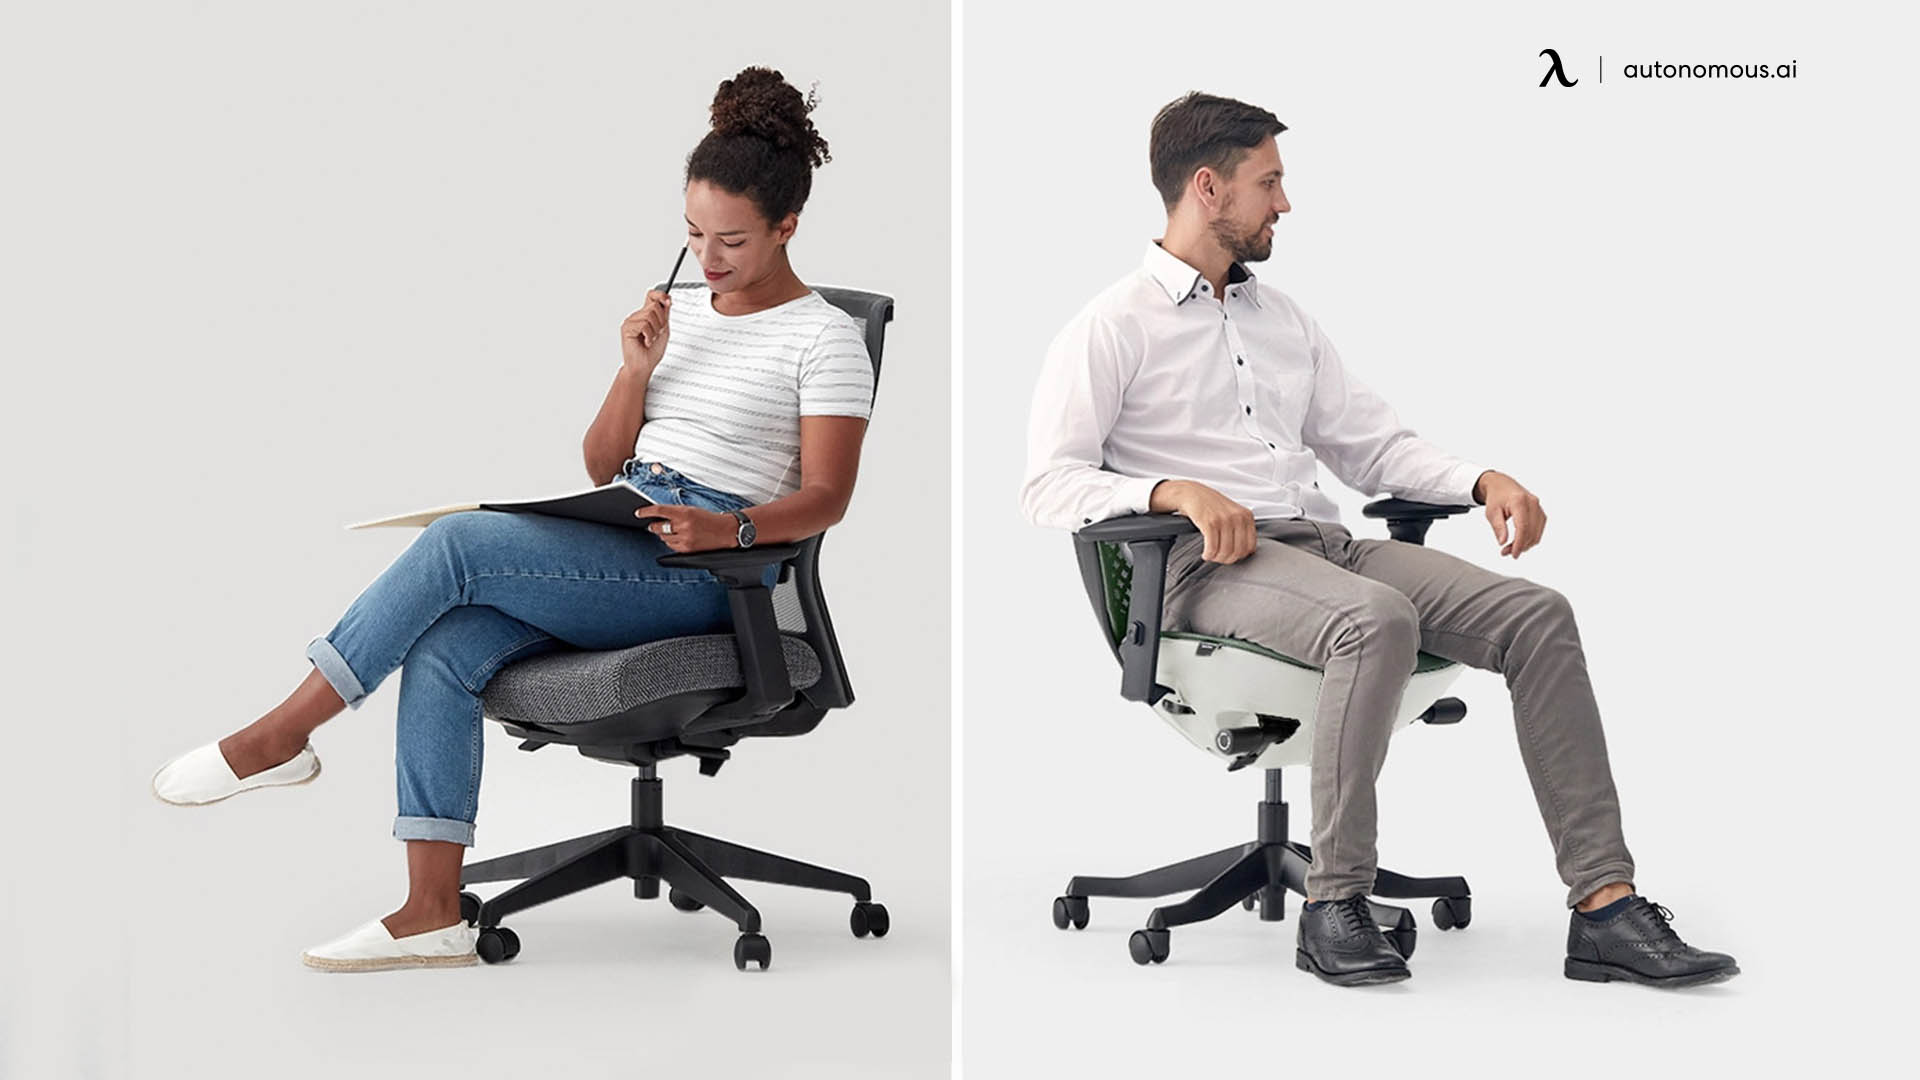 Which Chairs from Autonomous Are Available for Me?